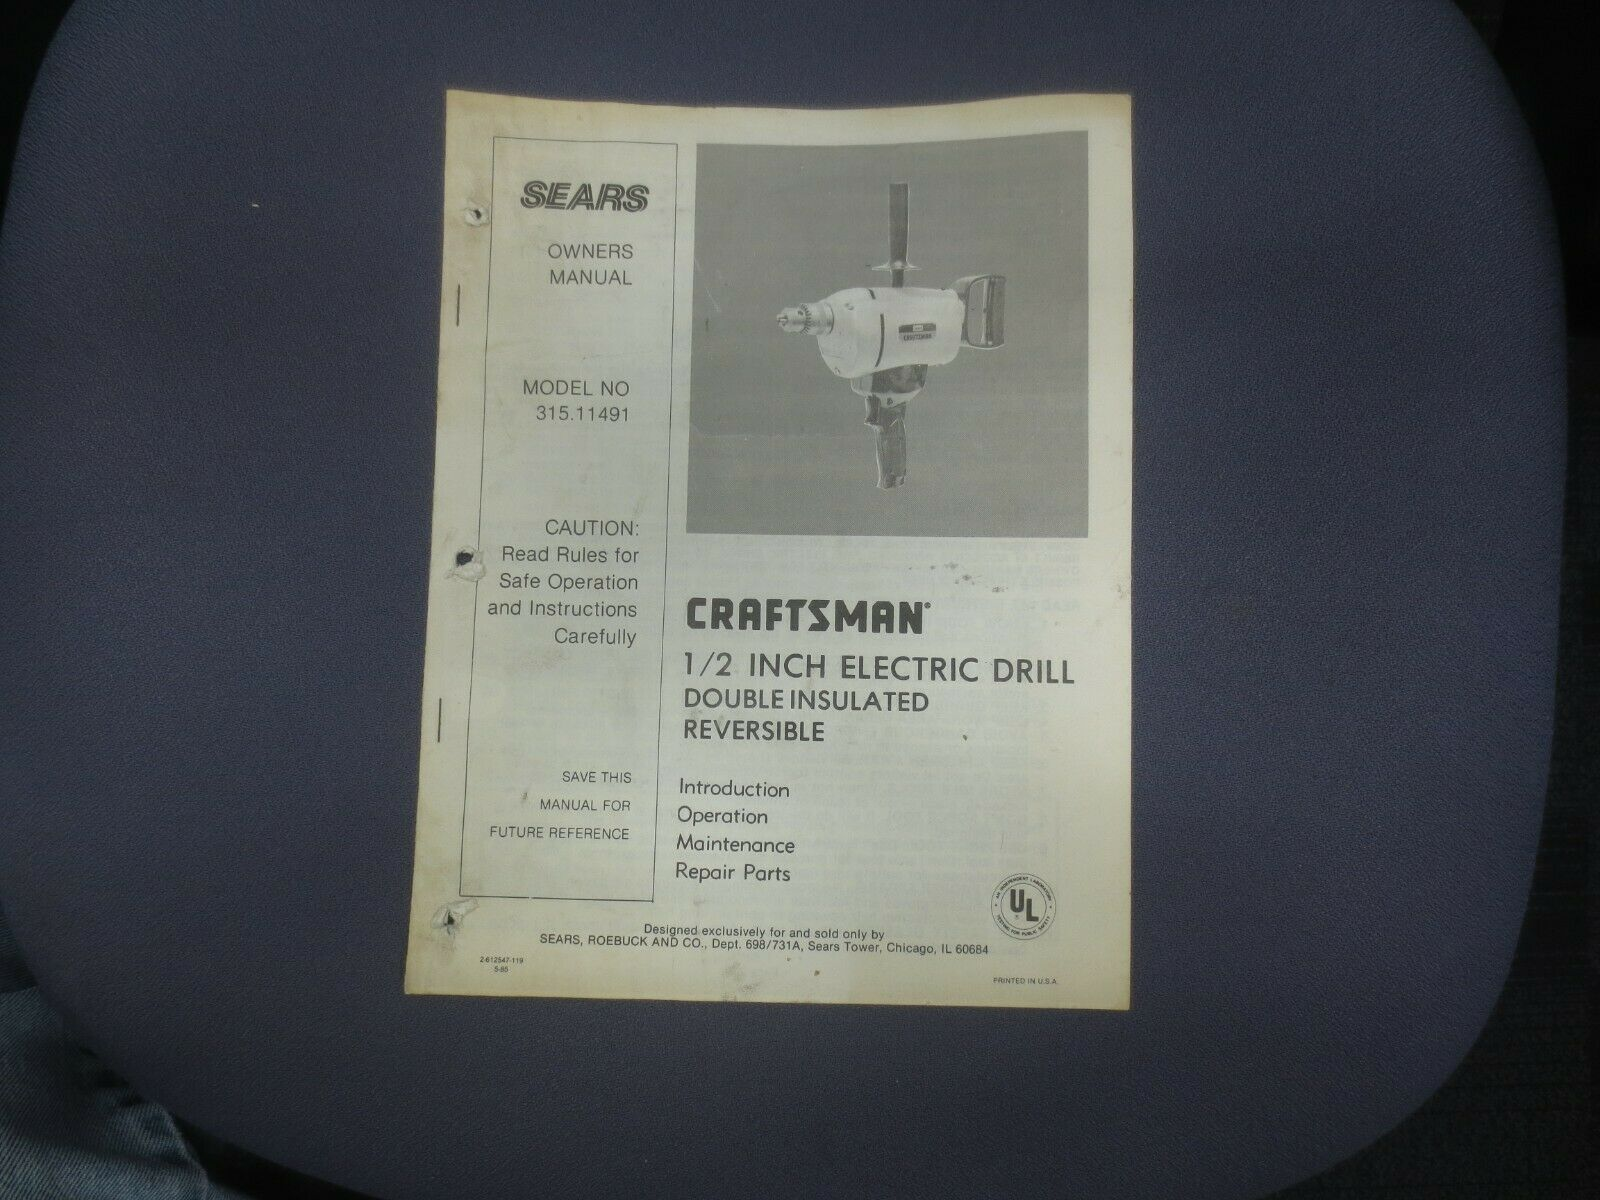 ☆ 1985 Sears Craftsman Owners Manual 1/2 INCH ELECTRIC DRILL - REVERSIBLE